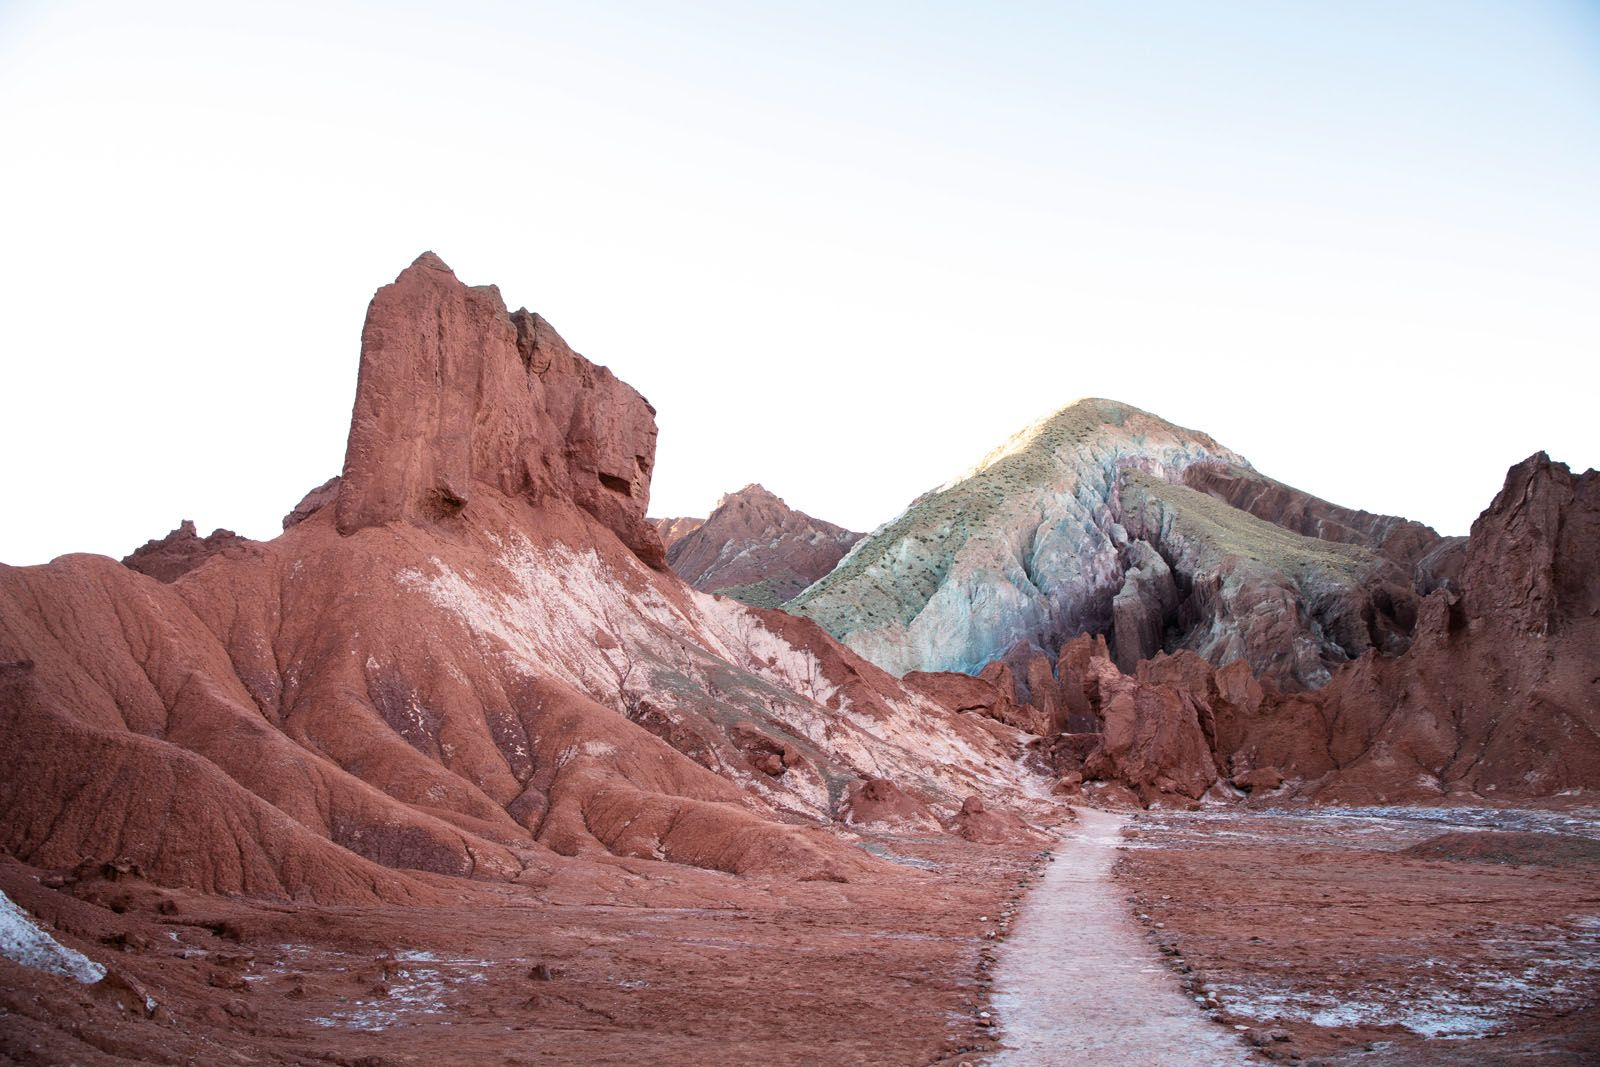 The intriguing colours of this mountain is a sight to behold at the Valle de Arcoiris, also known as Rainbow Valley